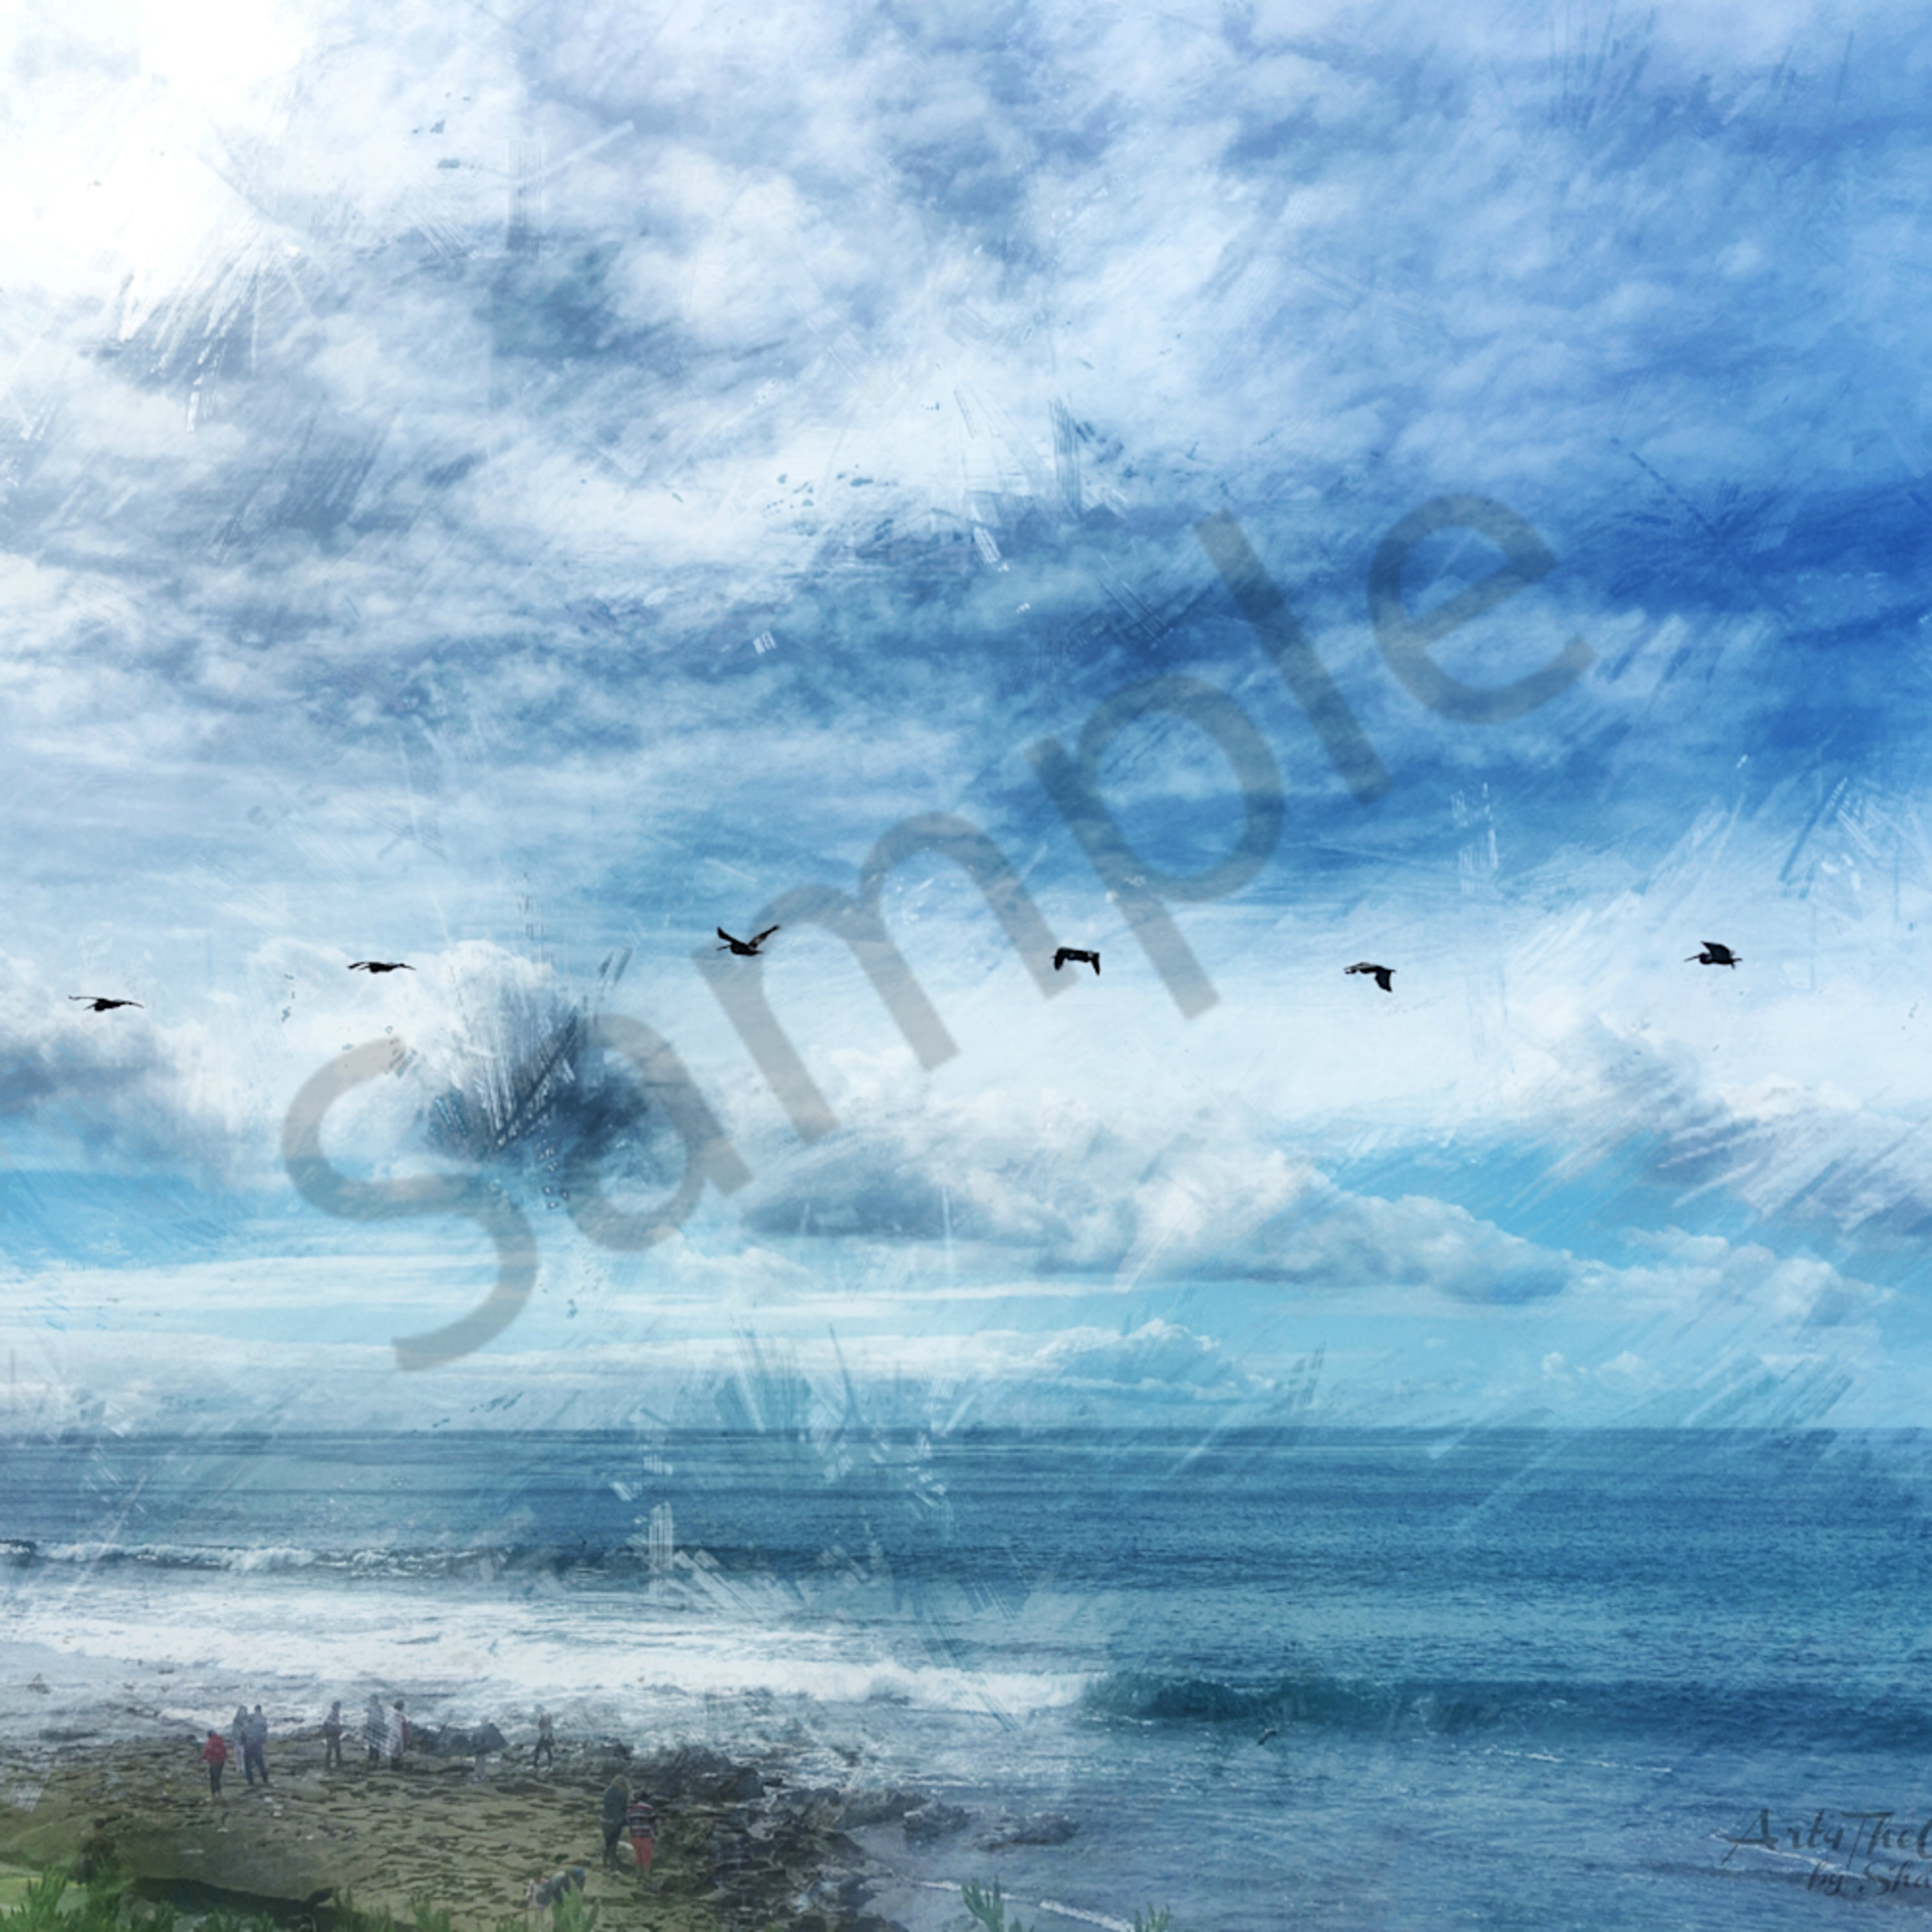 Question the beauty   img 3045 la jolla pelican squadron flying over the ocean 2019   abstract enlight372 cmbn art4theglryofgod pkykgo